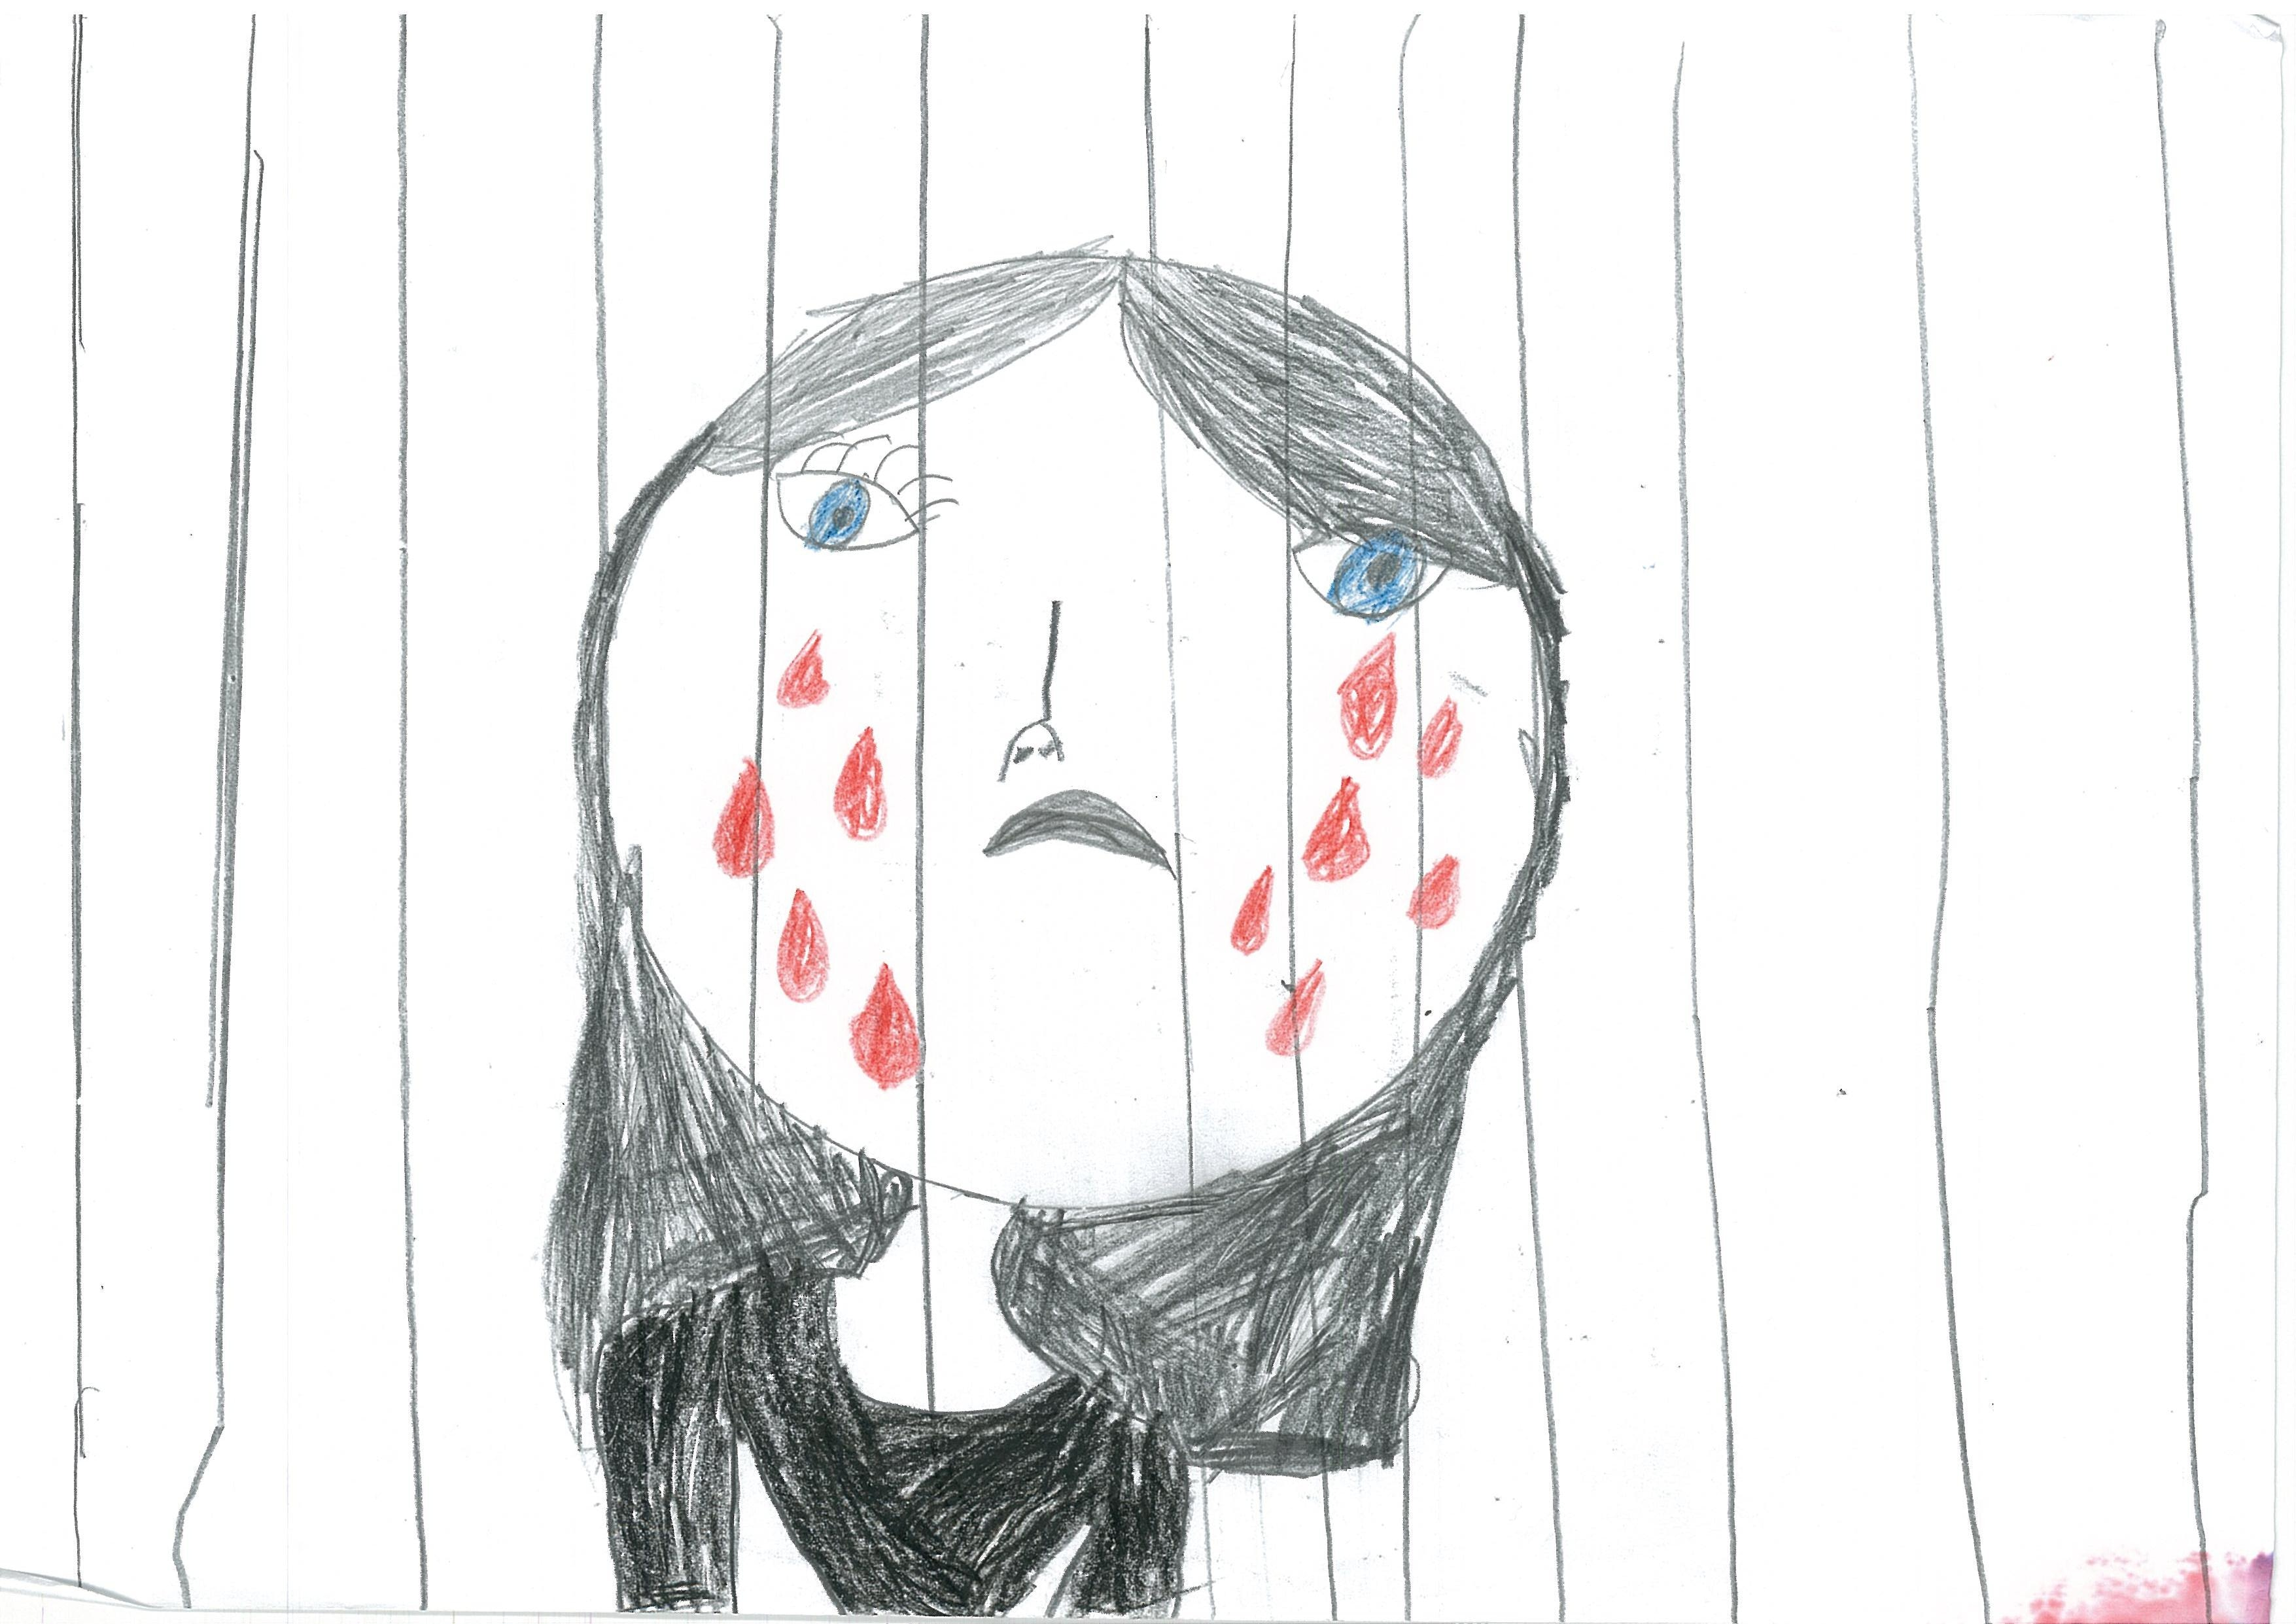 Detained children risk life-long physical and mental harm